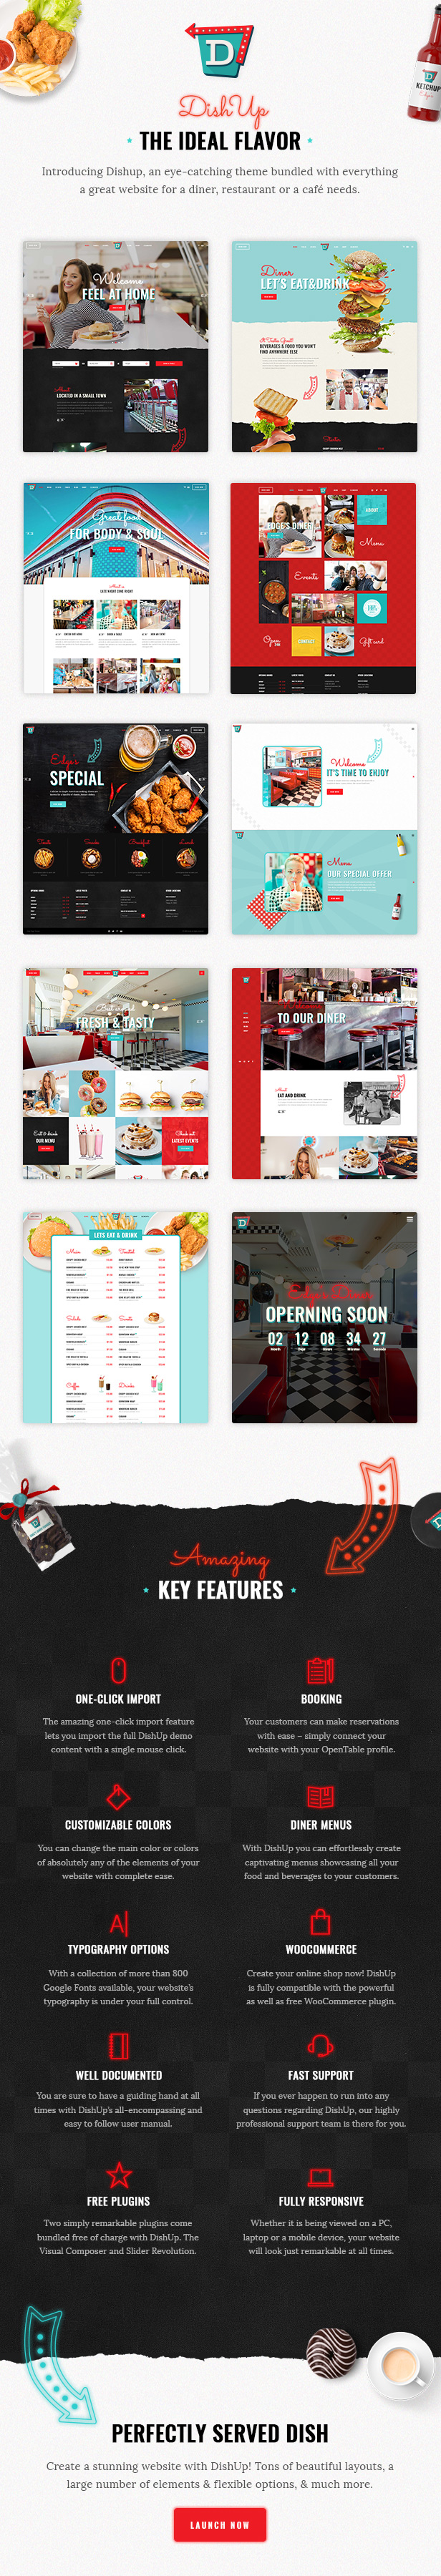 dishup - a theme for diners and restaurants (restaurants & cafes) DishUp – A Theme for Diners and Restaurants (Restaurants & Cafes) 01a